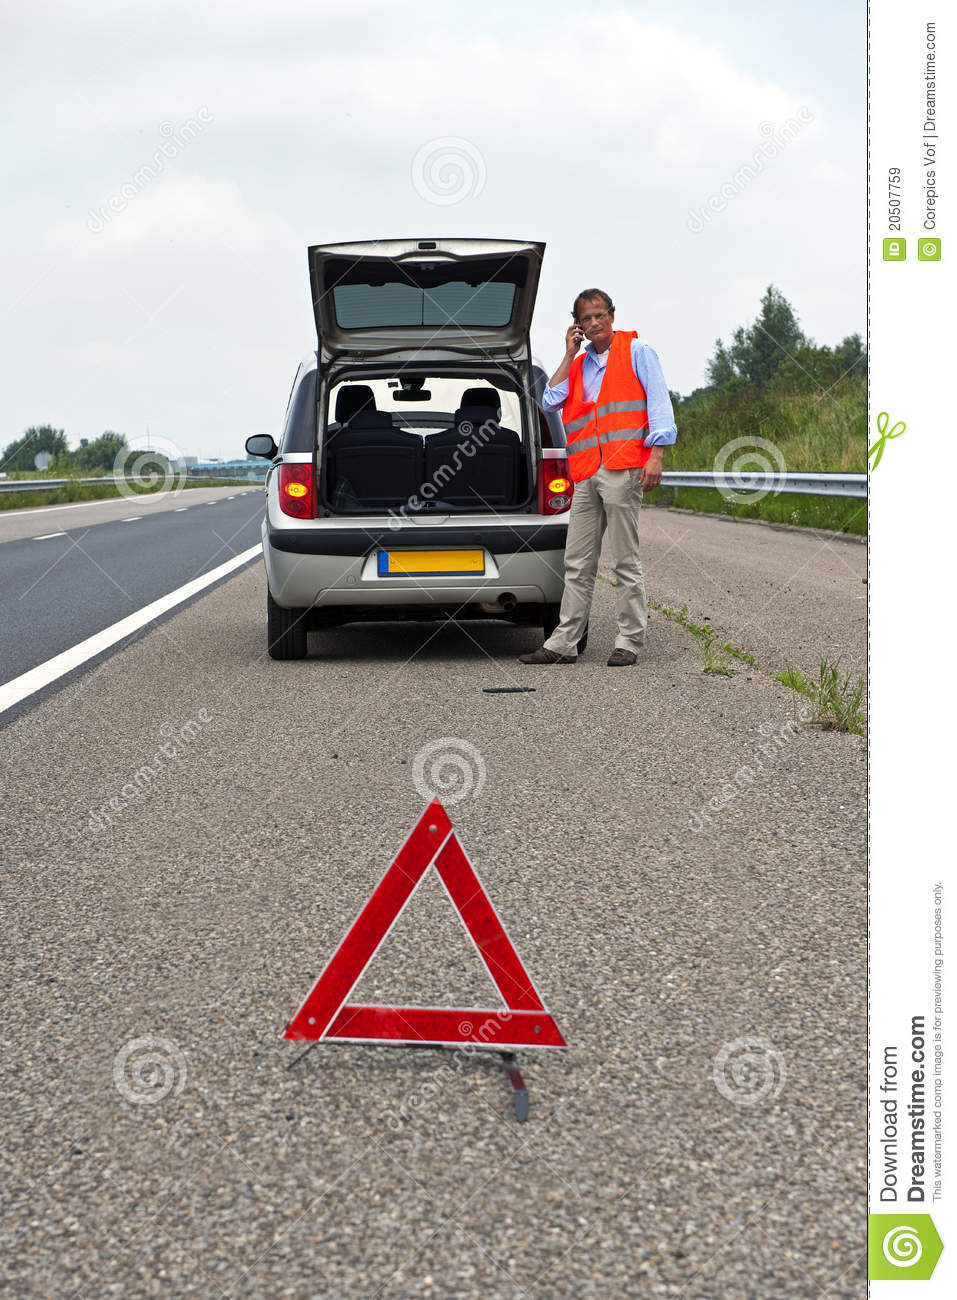 Broken Down Abandoned Stock Photos Broken Down Abandoned: Broken Down Car Royalty Free Stock Images